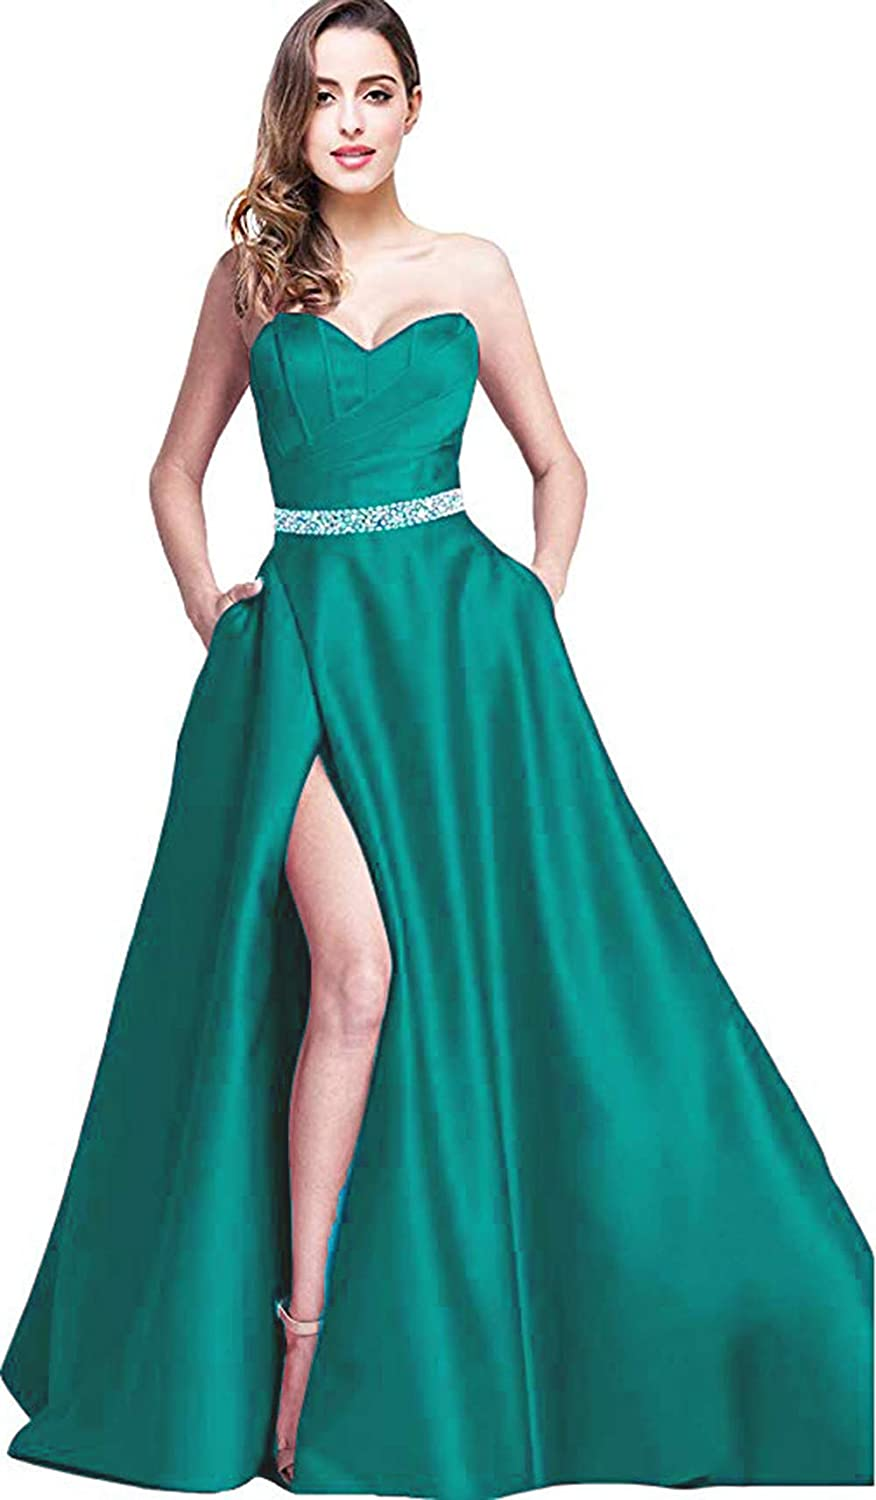 Turquoise Rmaytiked Womens Sweetheart Satin Beaded Prom Dresses Long High Slit 2019 Strapless Evening Formal Gowns with Pockets